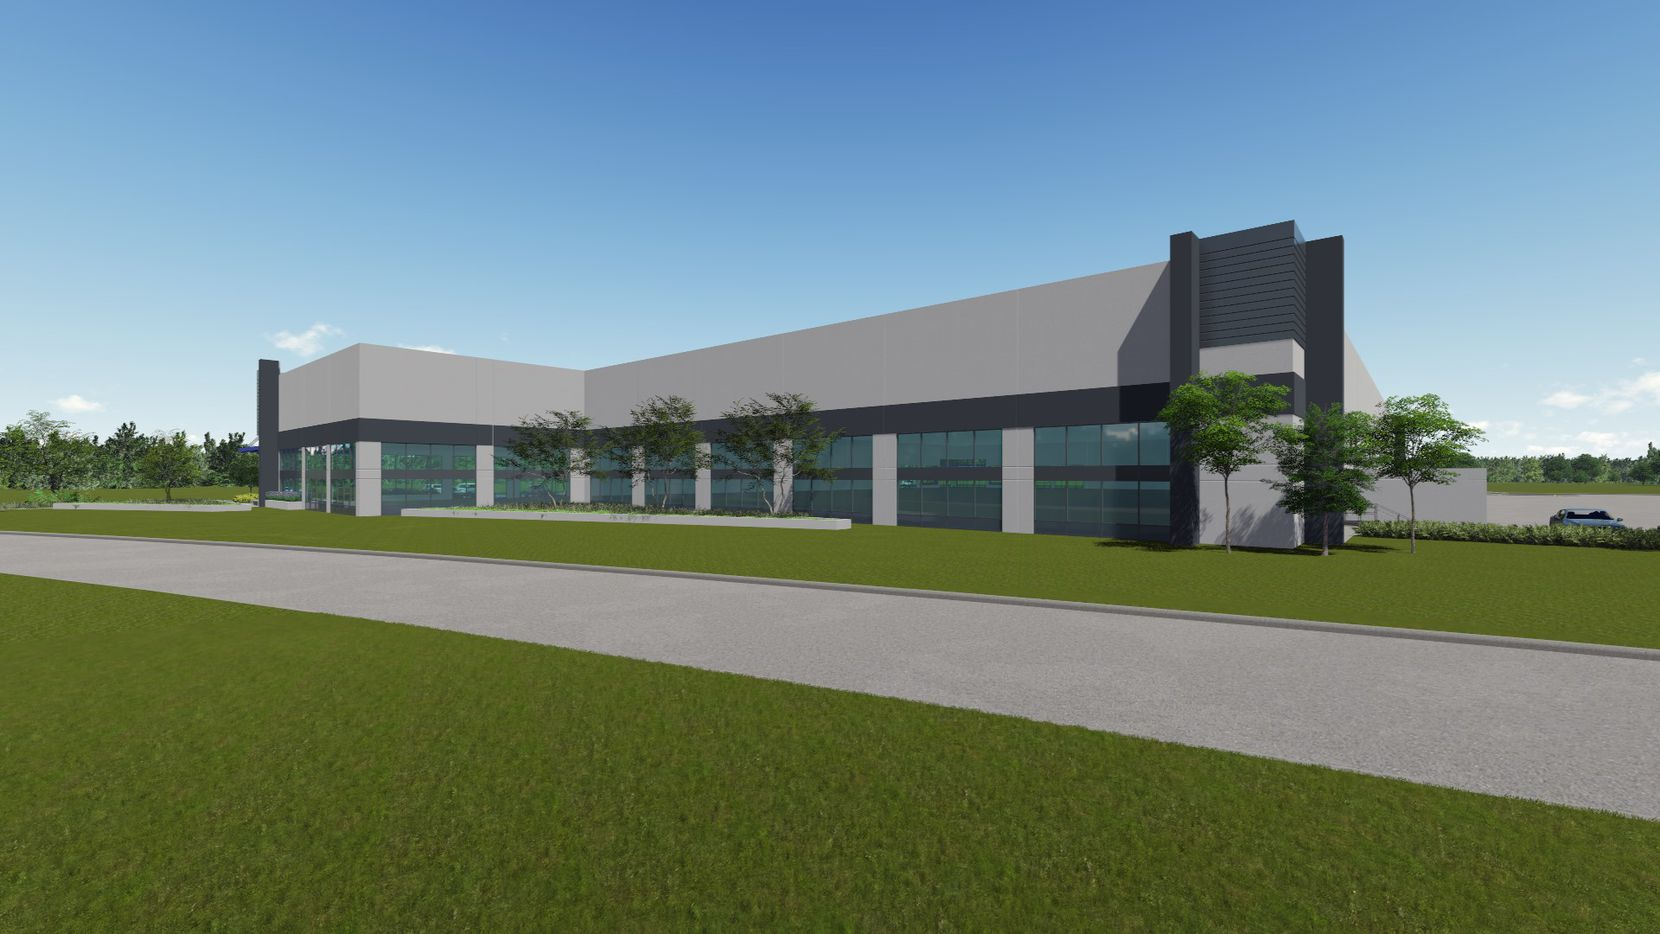 The new Mountain Creek Business Park buildings will be ready in early 2018.